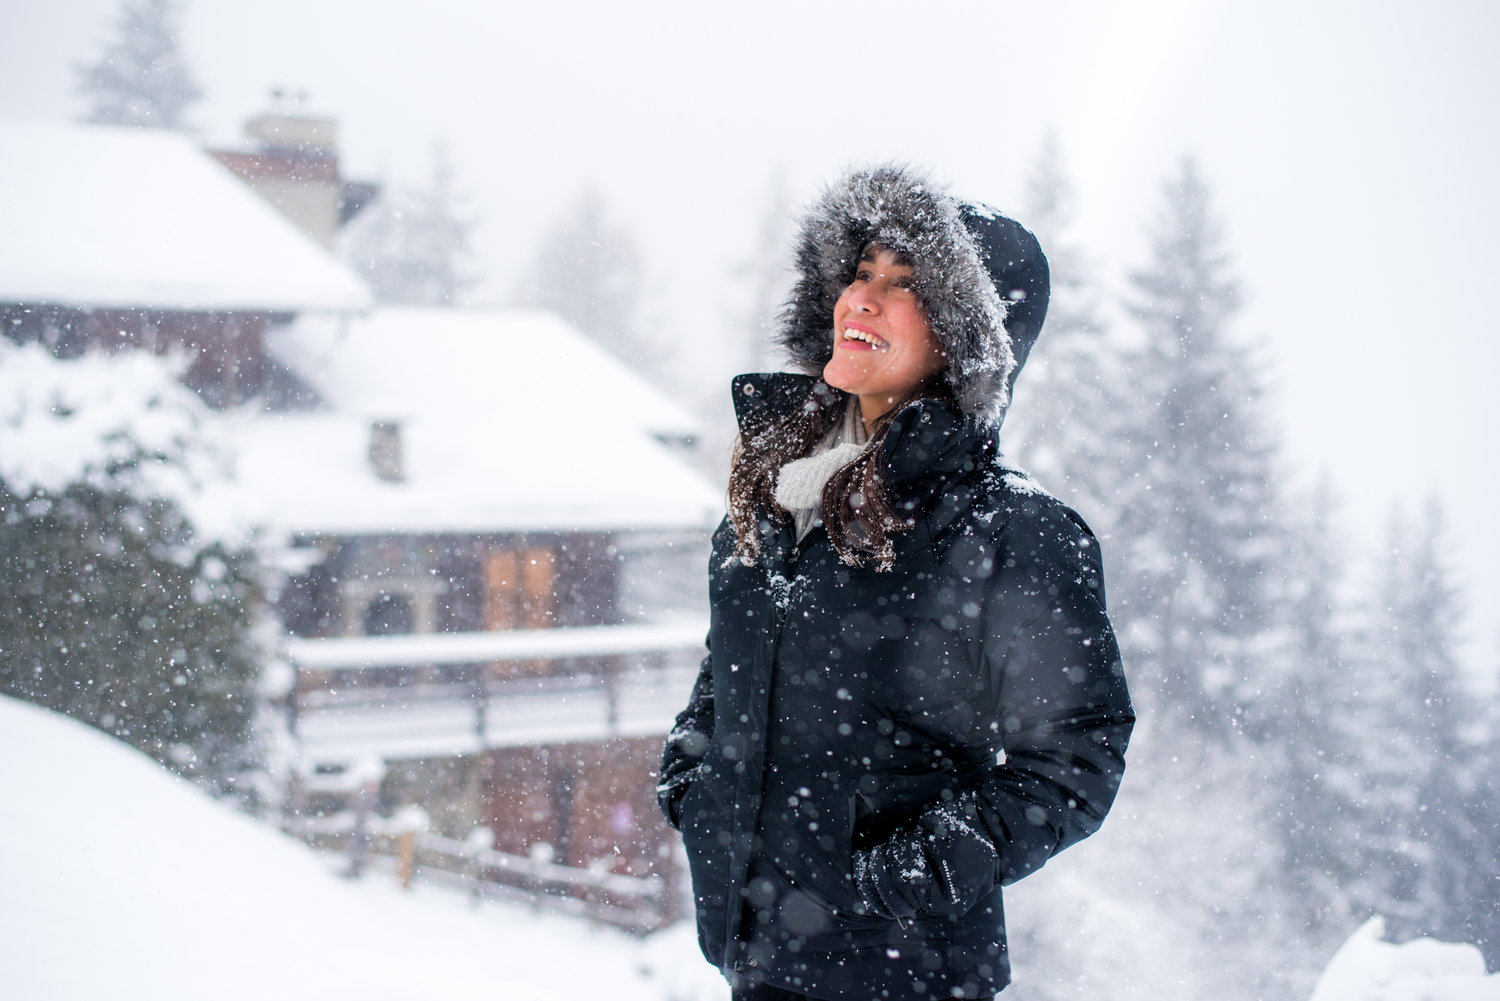 Winter Packing Guide: Our Cold Weather Essentials